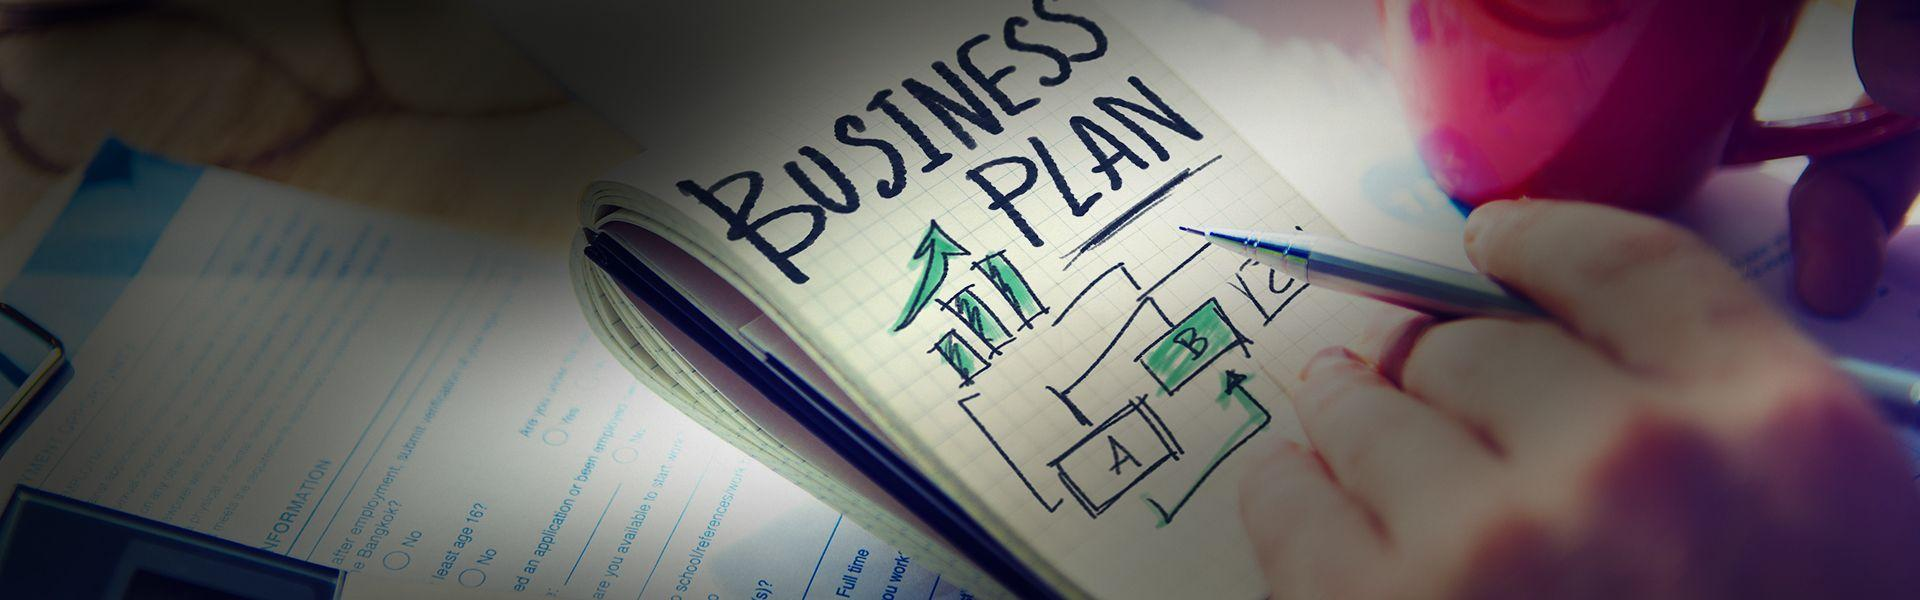 Business needs, plans etc.